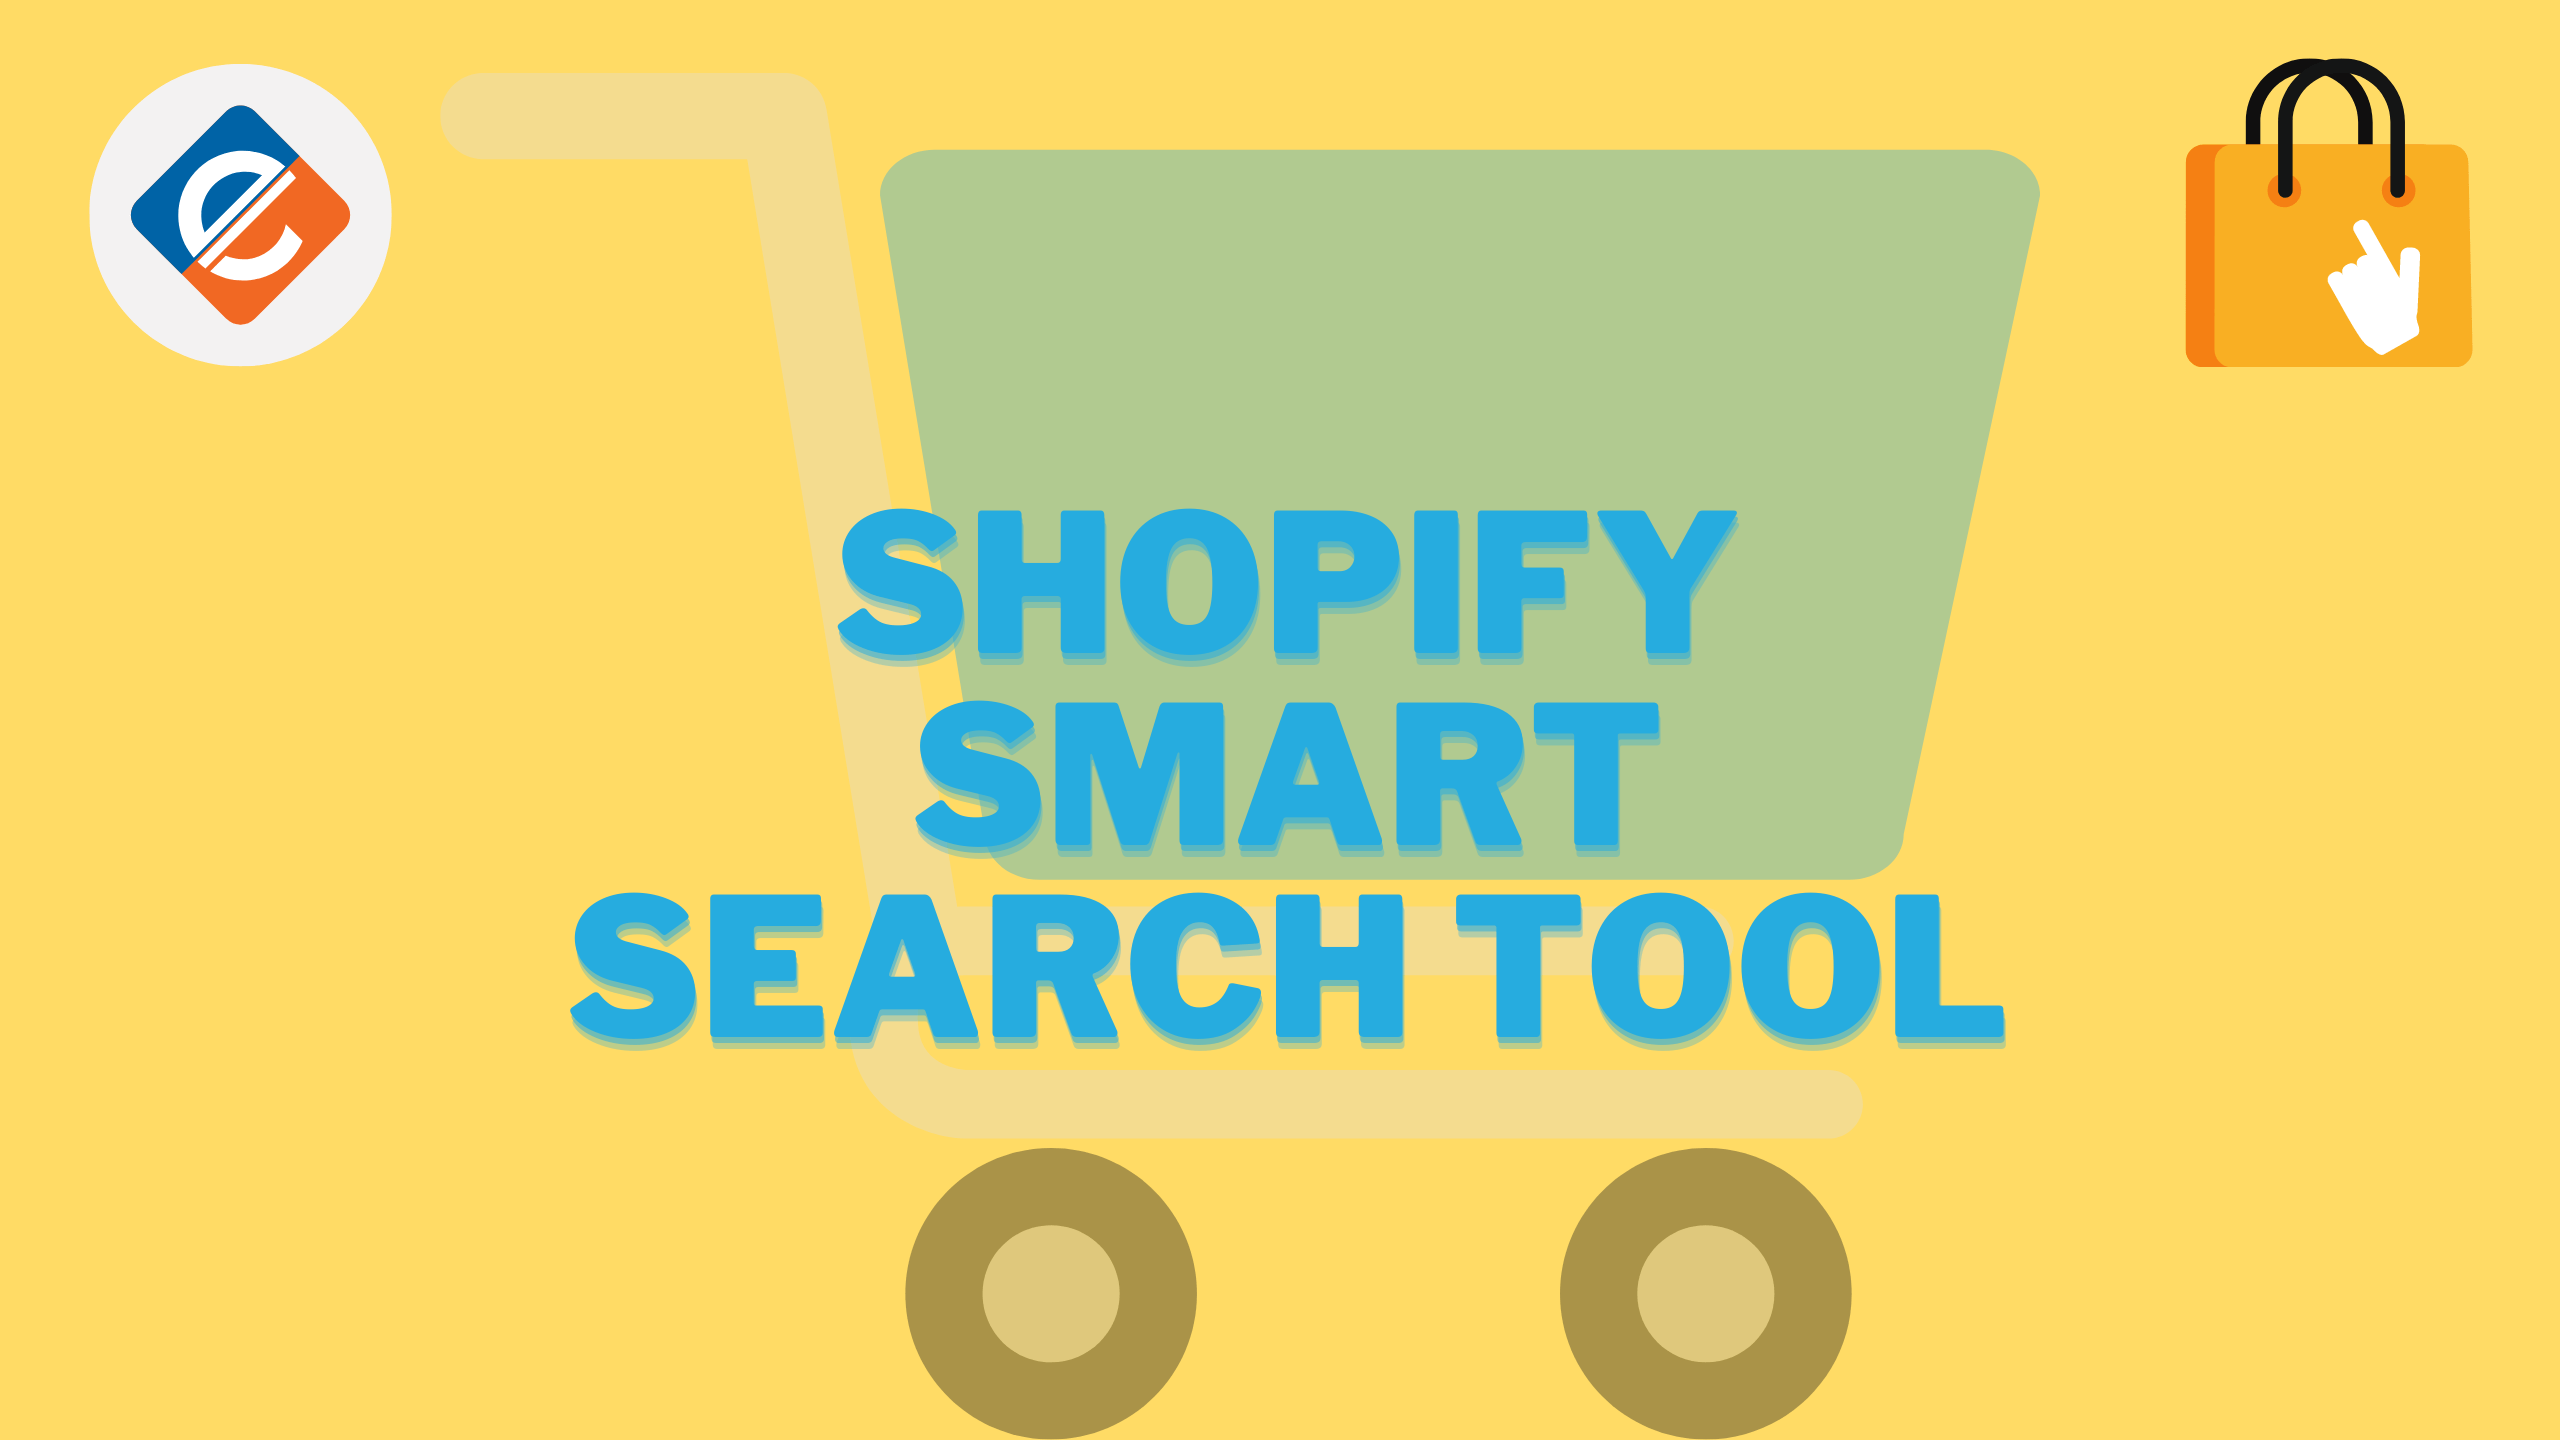 Shopify Smart Search Tool